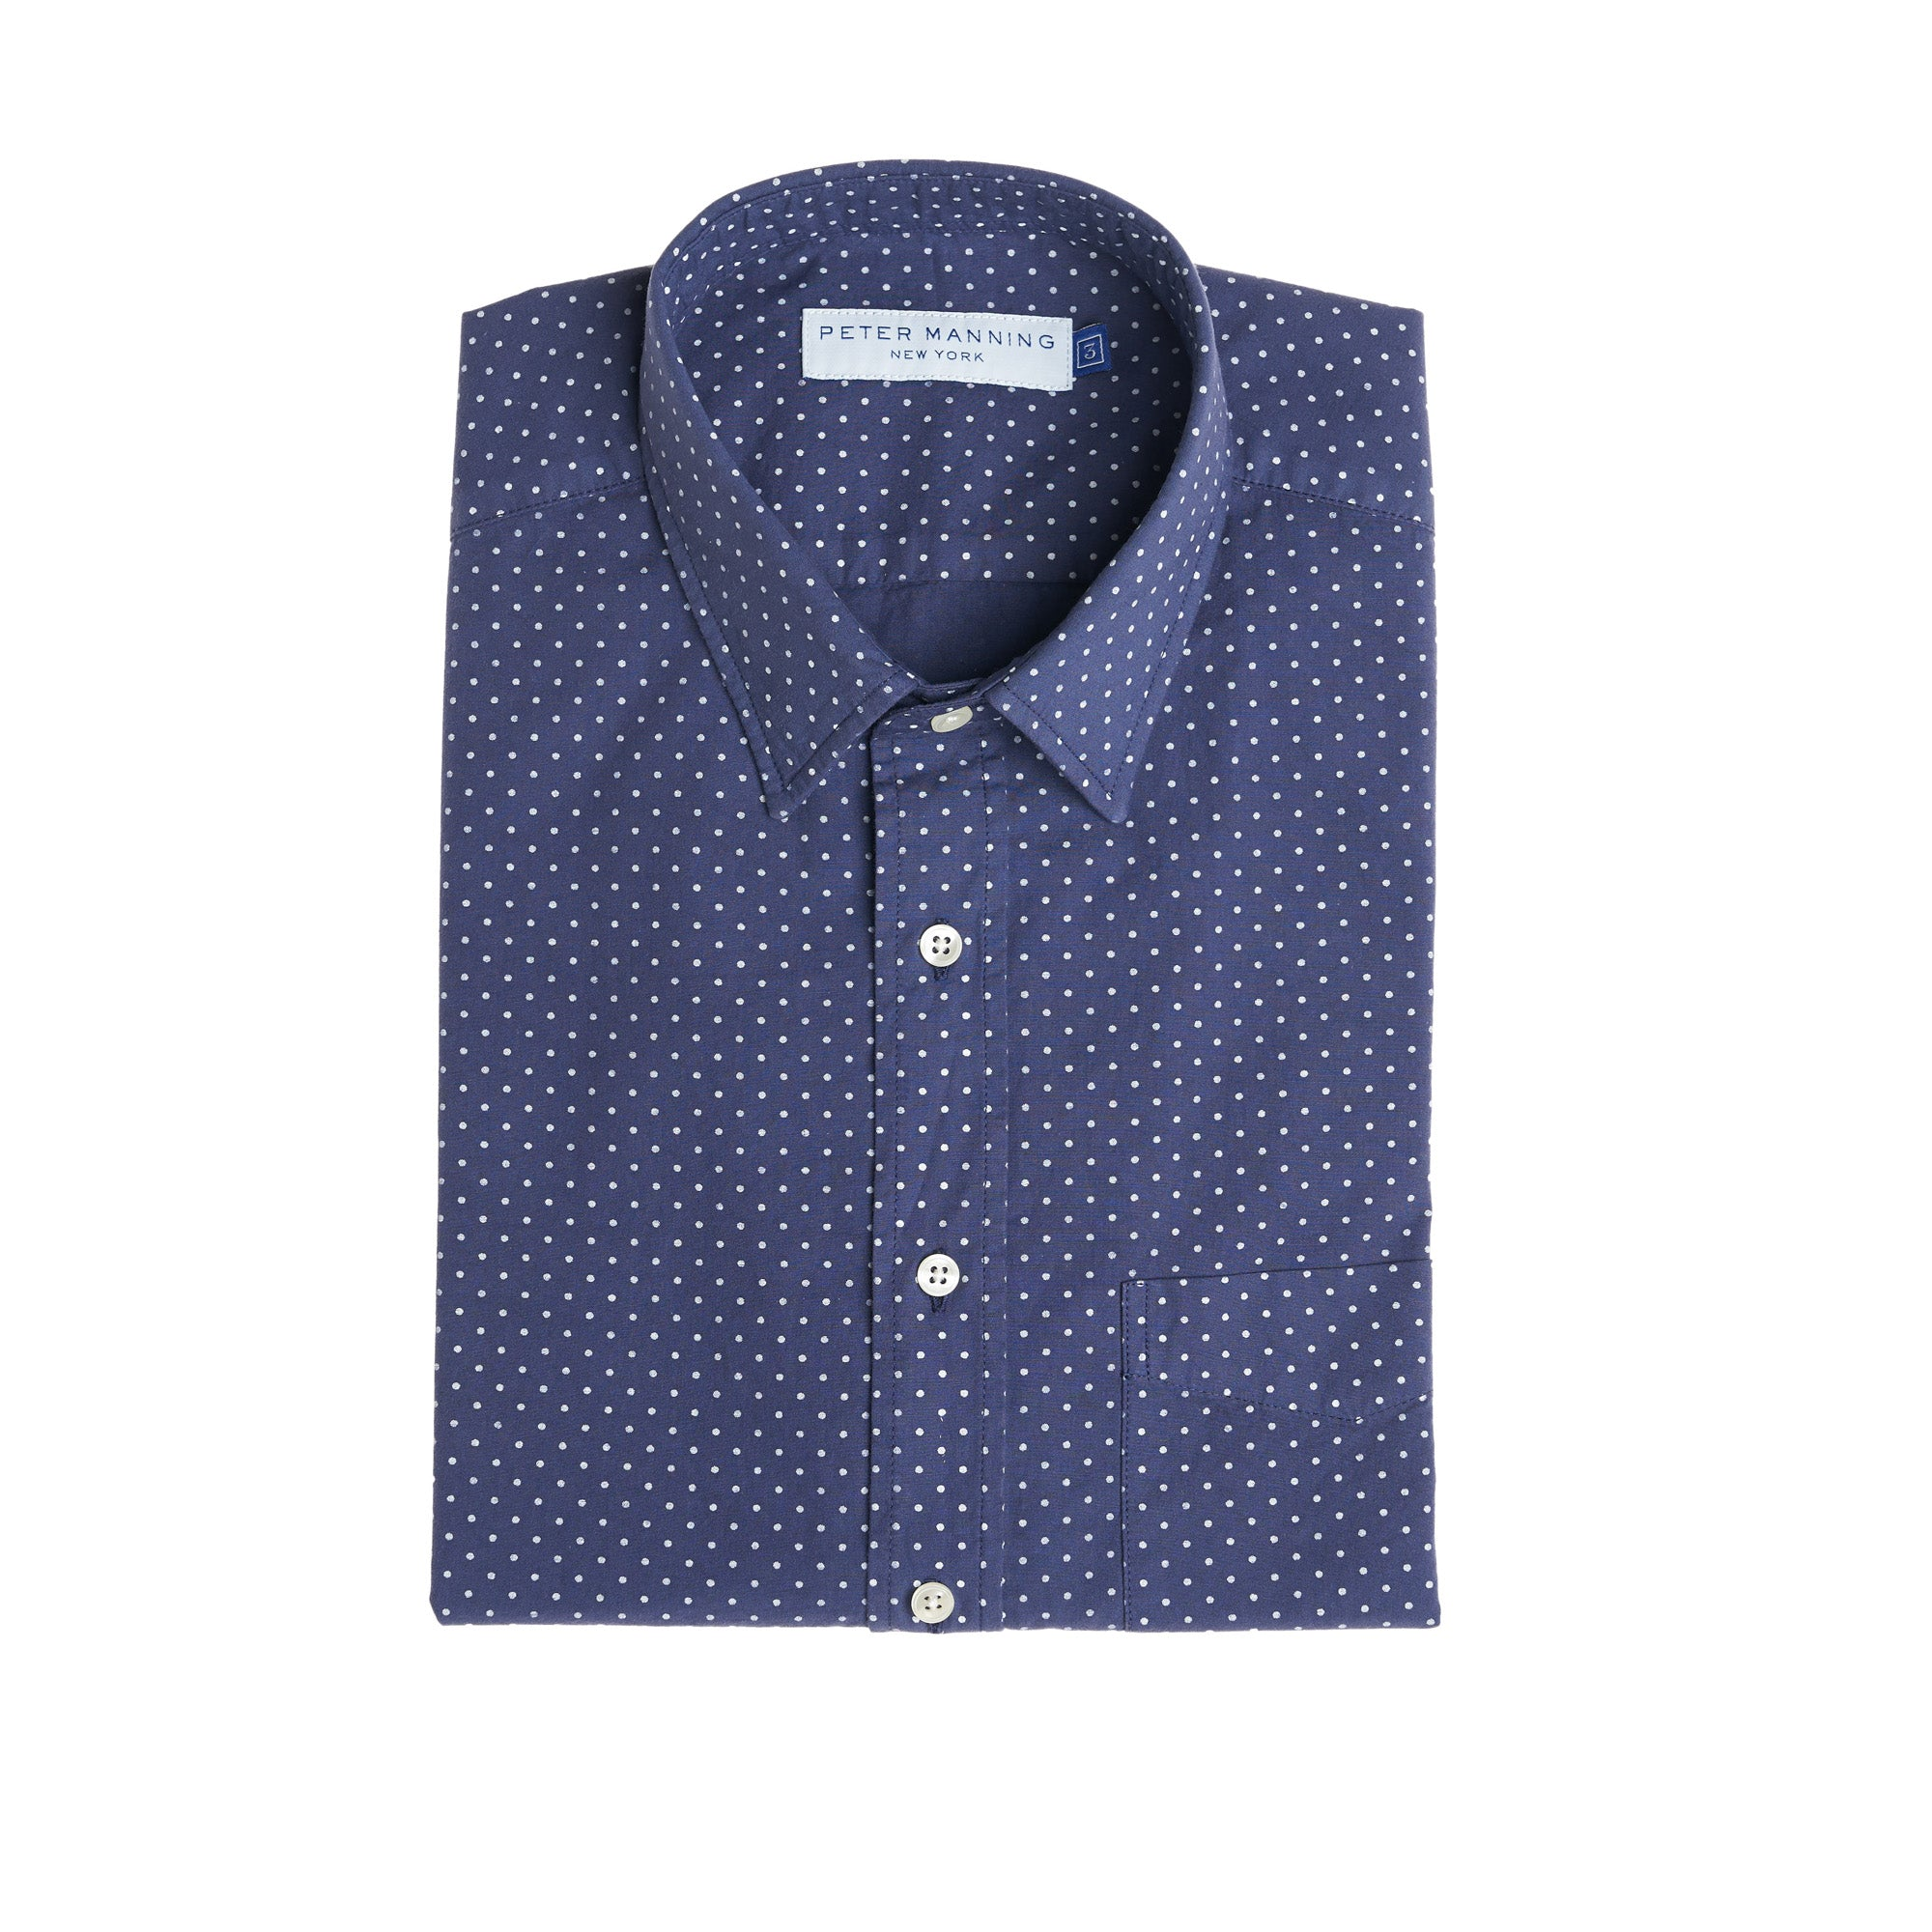 Weekend Printed Shirt - Navy Pindot